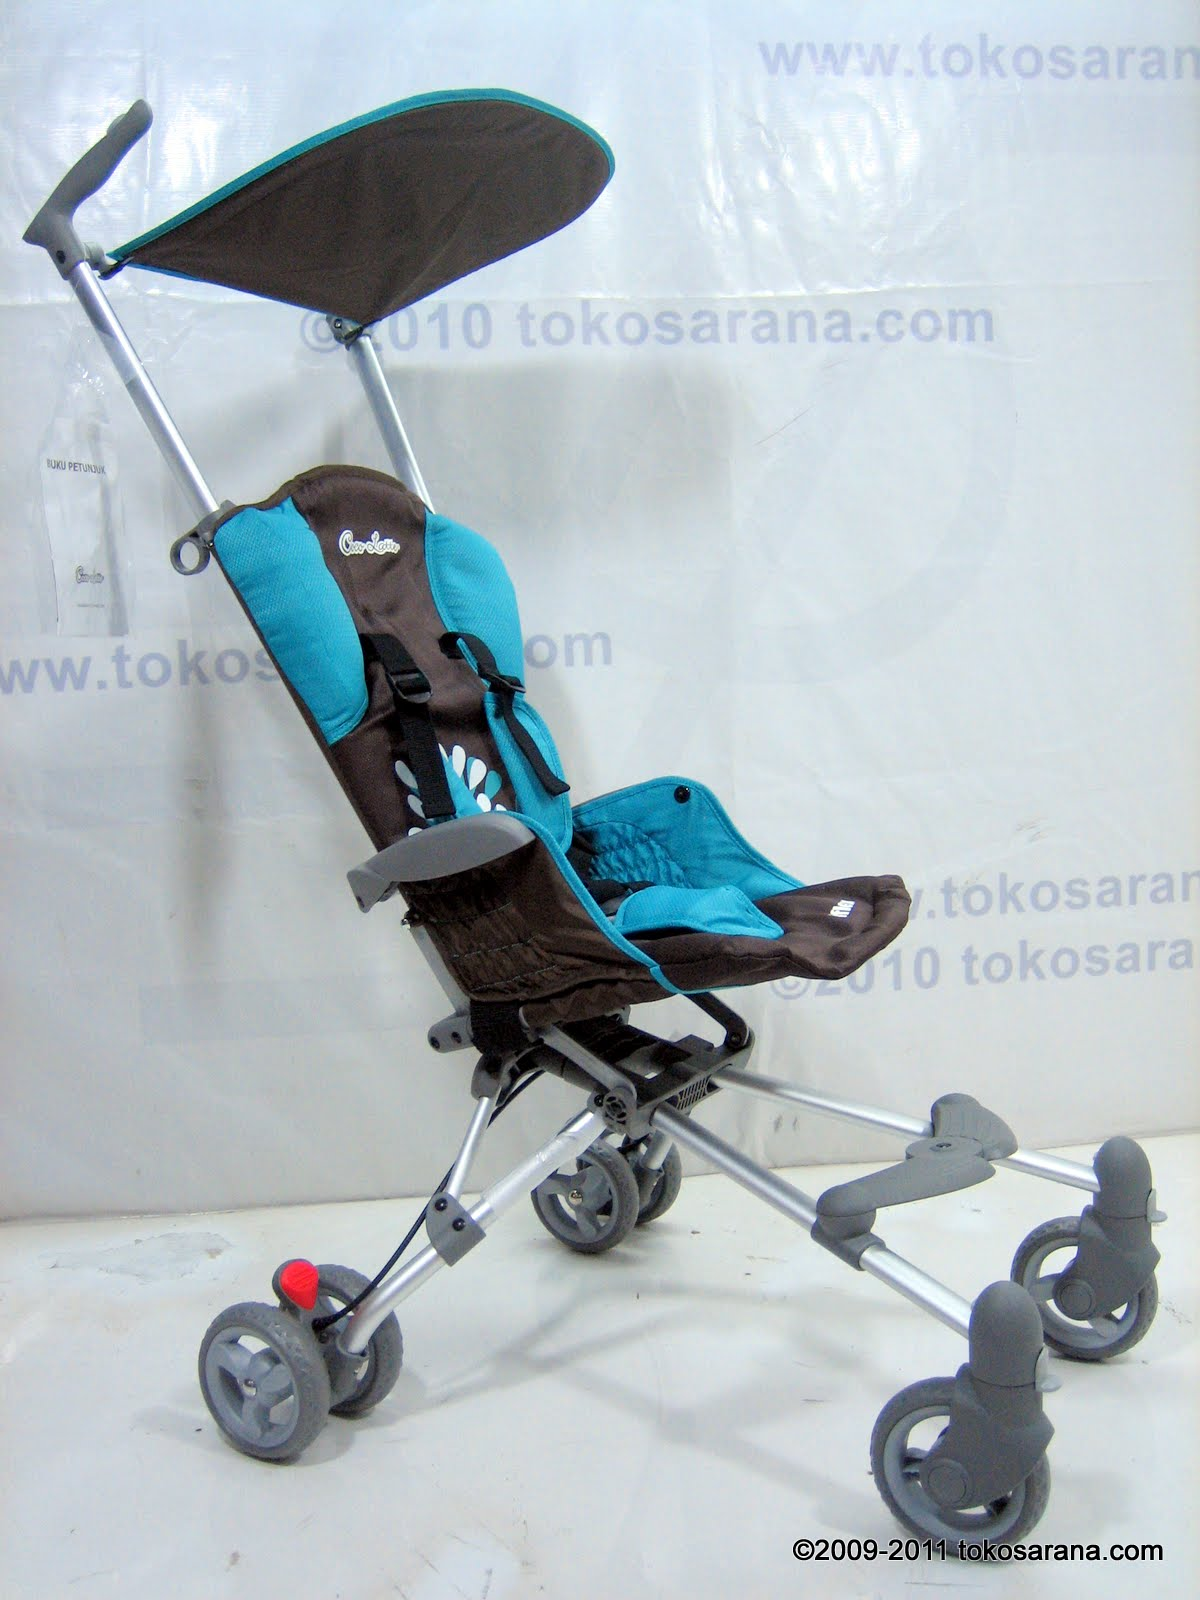 Peg Perego Pliko Matic Stroller Instructions Life Love Family A Little Diary About Me My Family